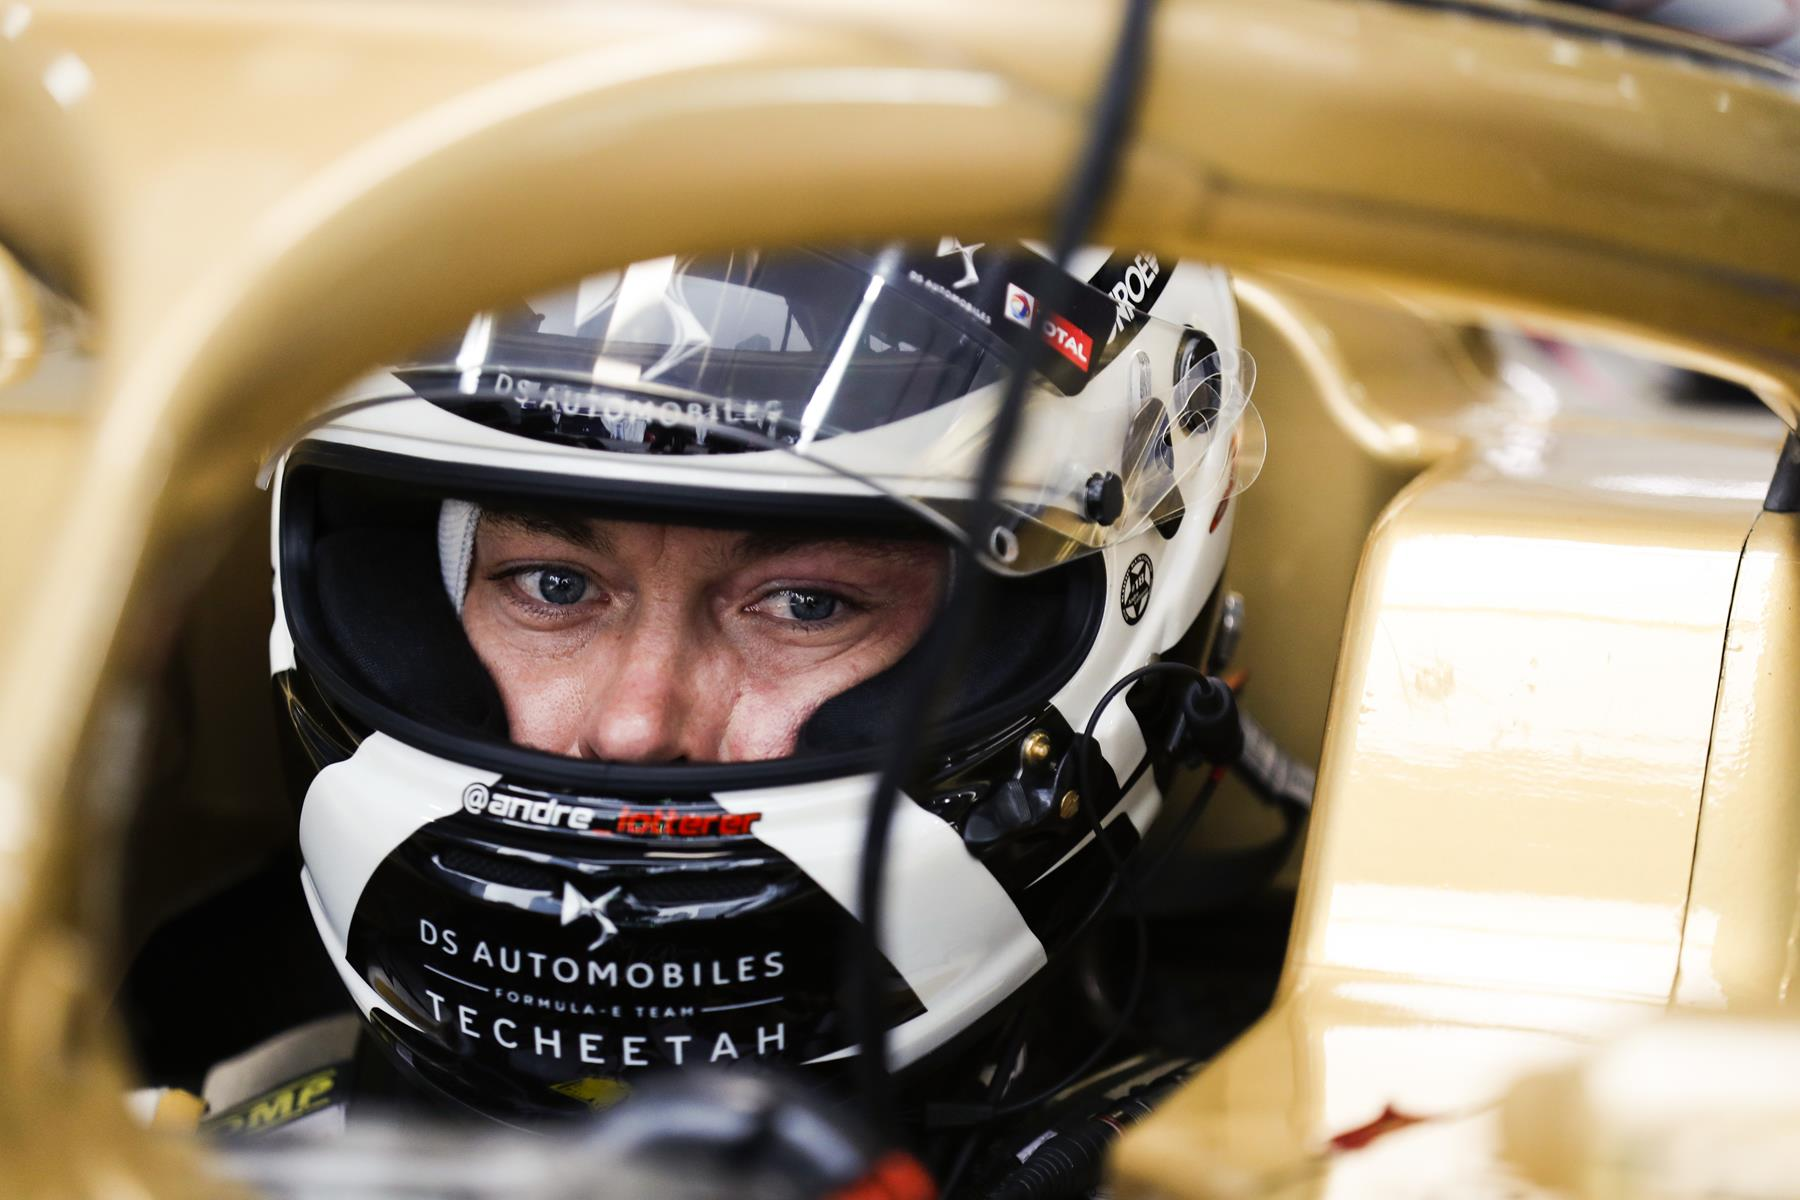 Andre-Lotterer-in-Garage